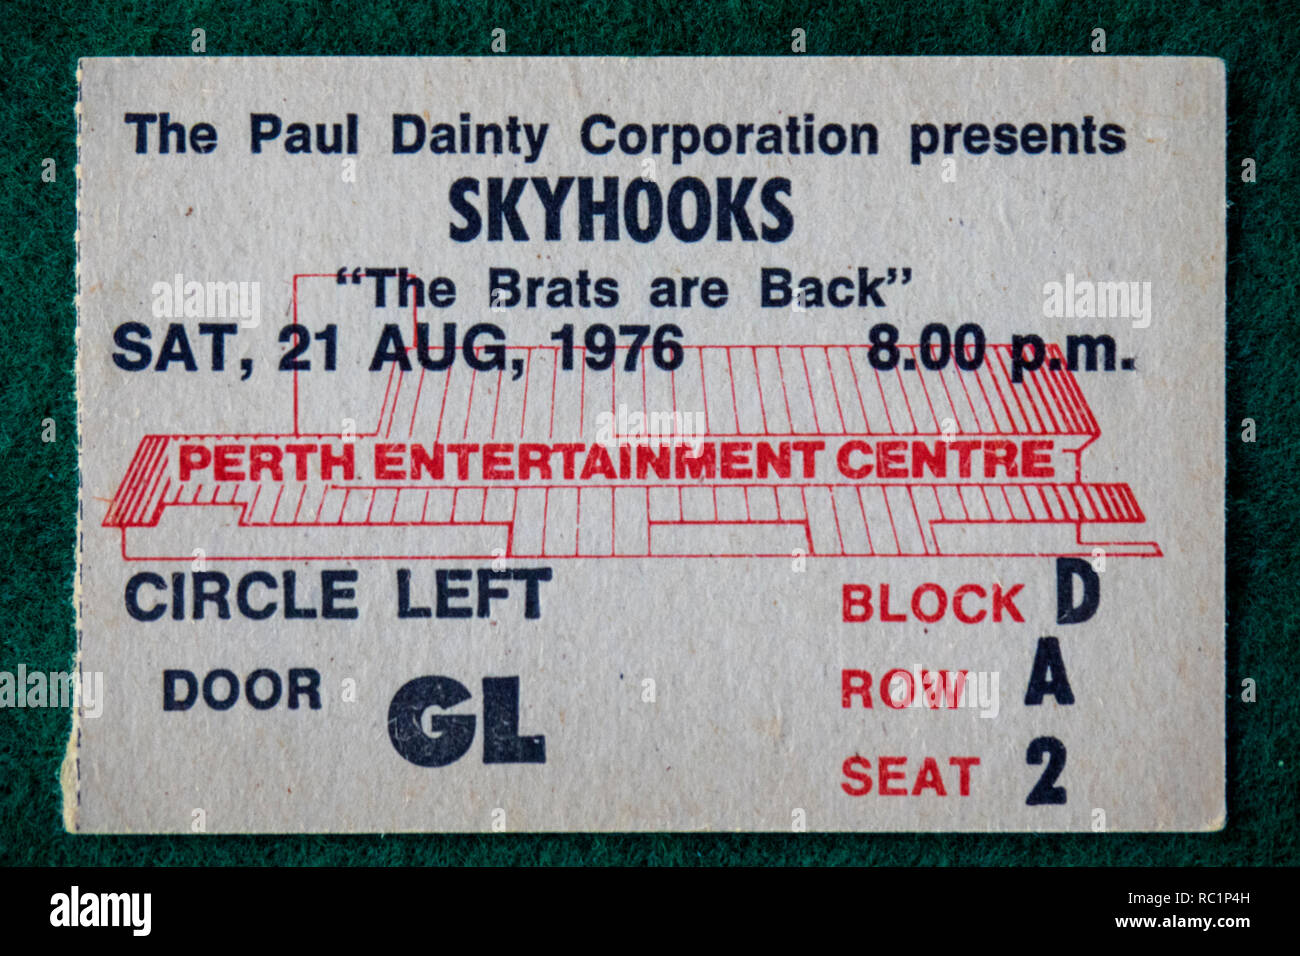 Ticket for Skyhooks concert at Perth Entertainment Centre in 1976 WA Australia. - Stock Image